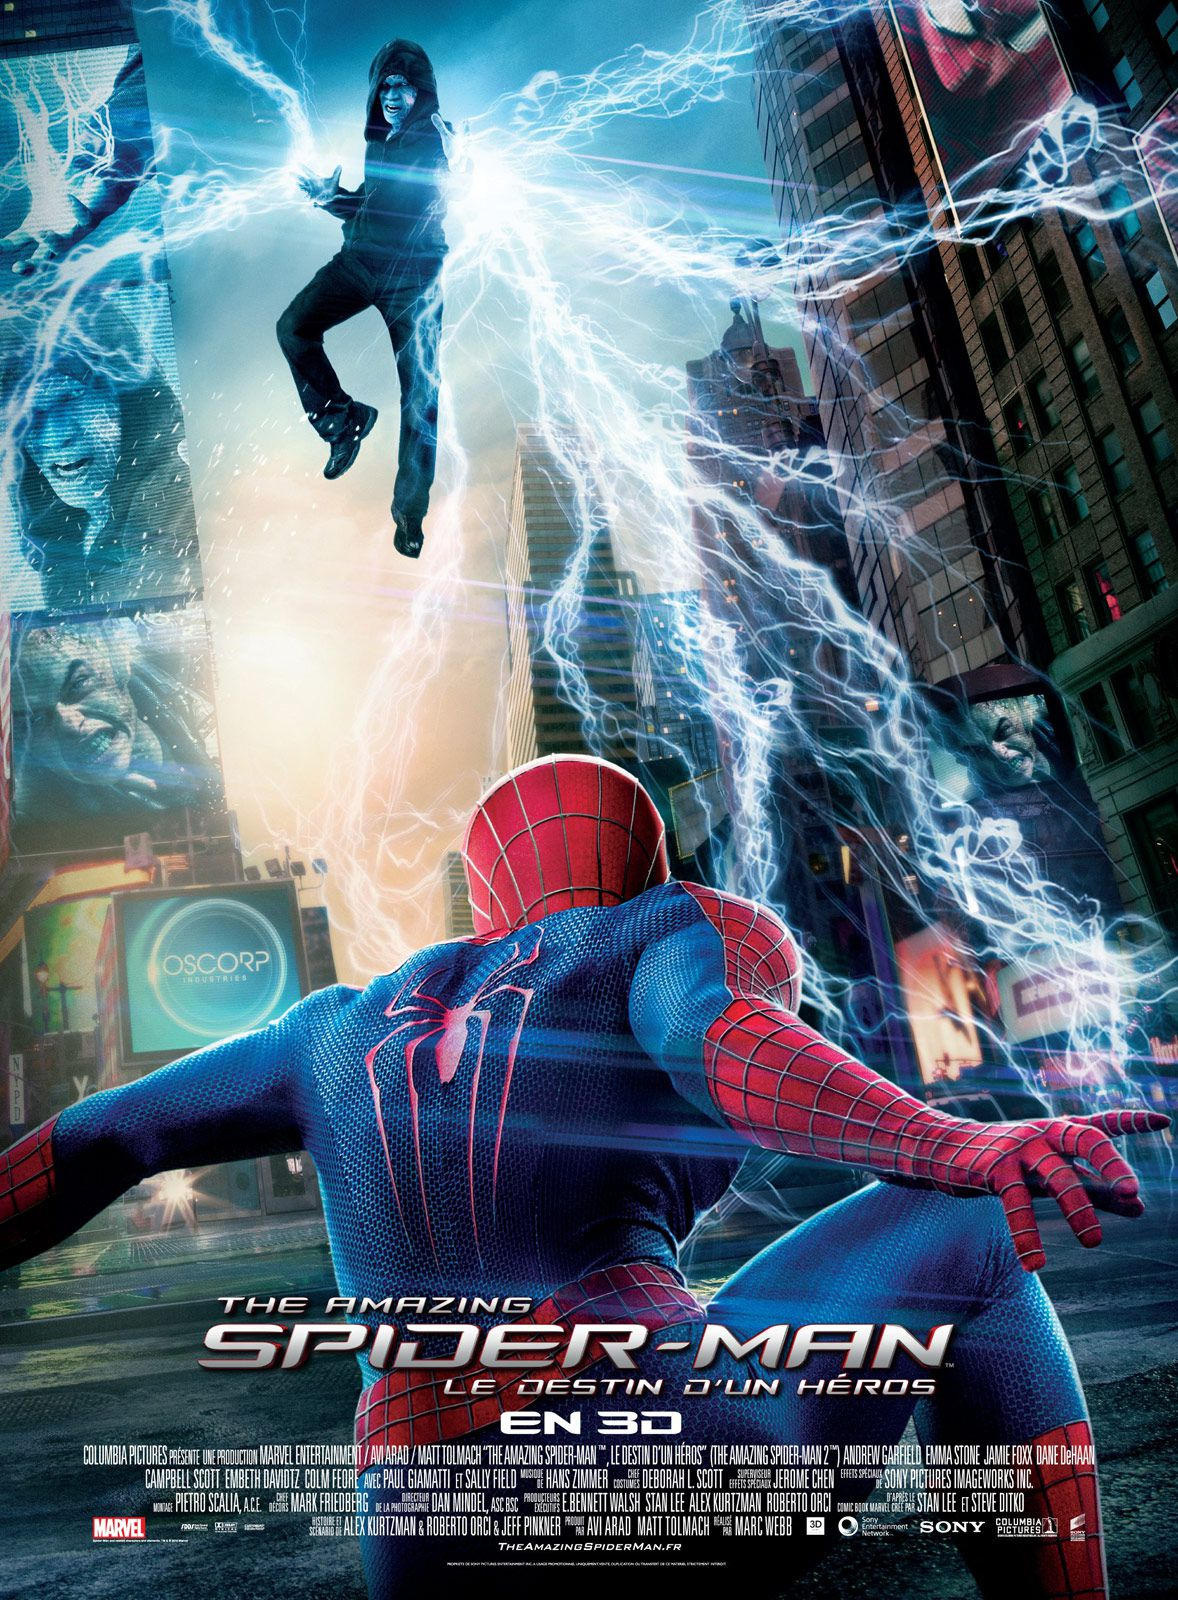 affiche poster amazing spider man 2 destin héros disney marvel